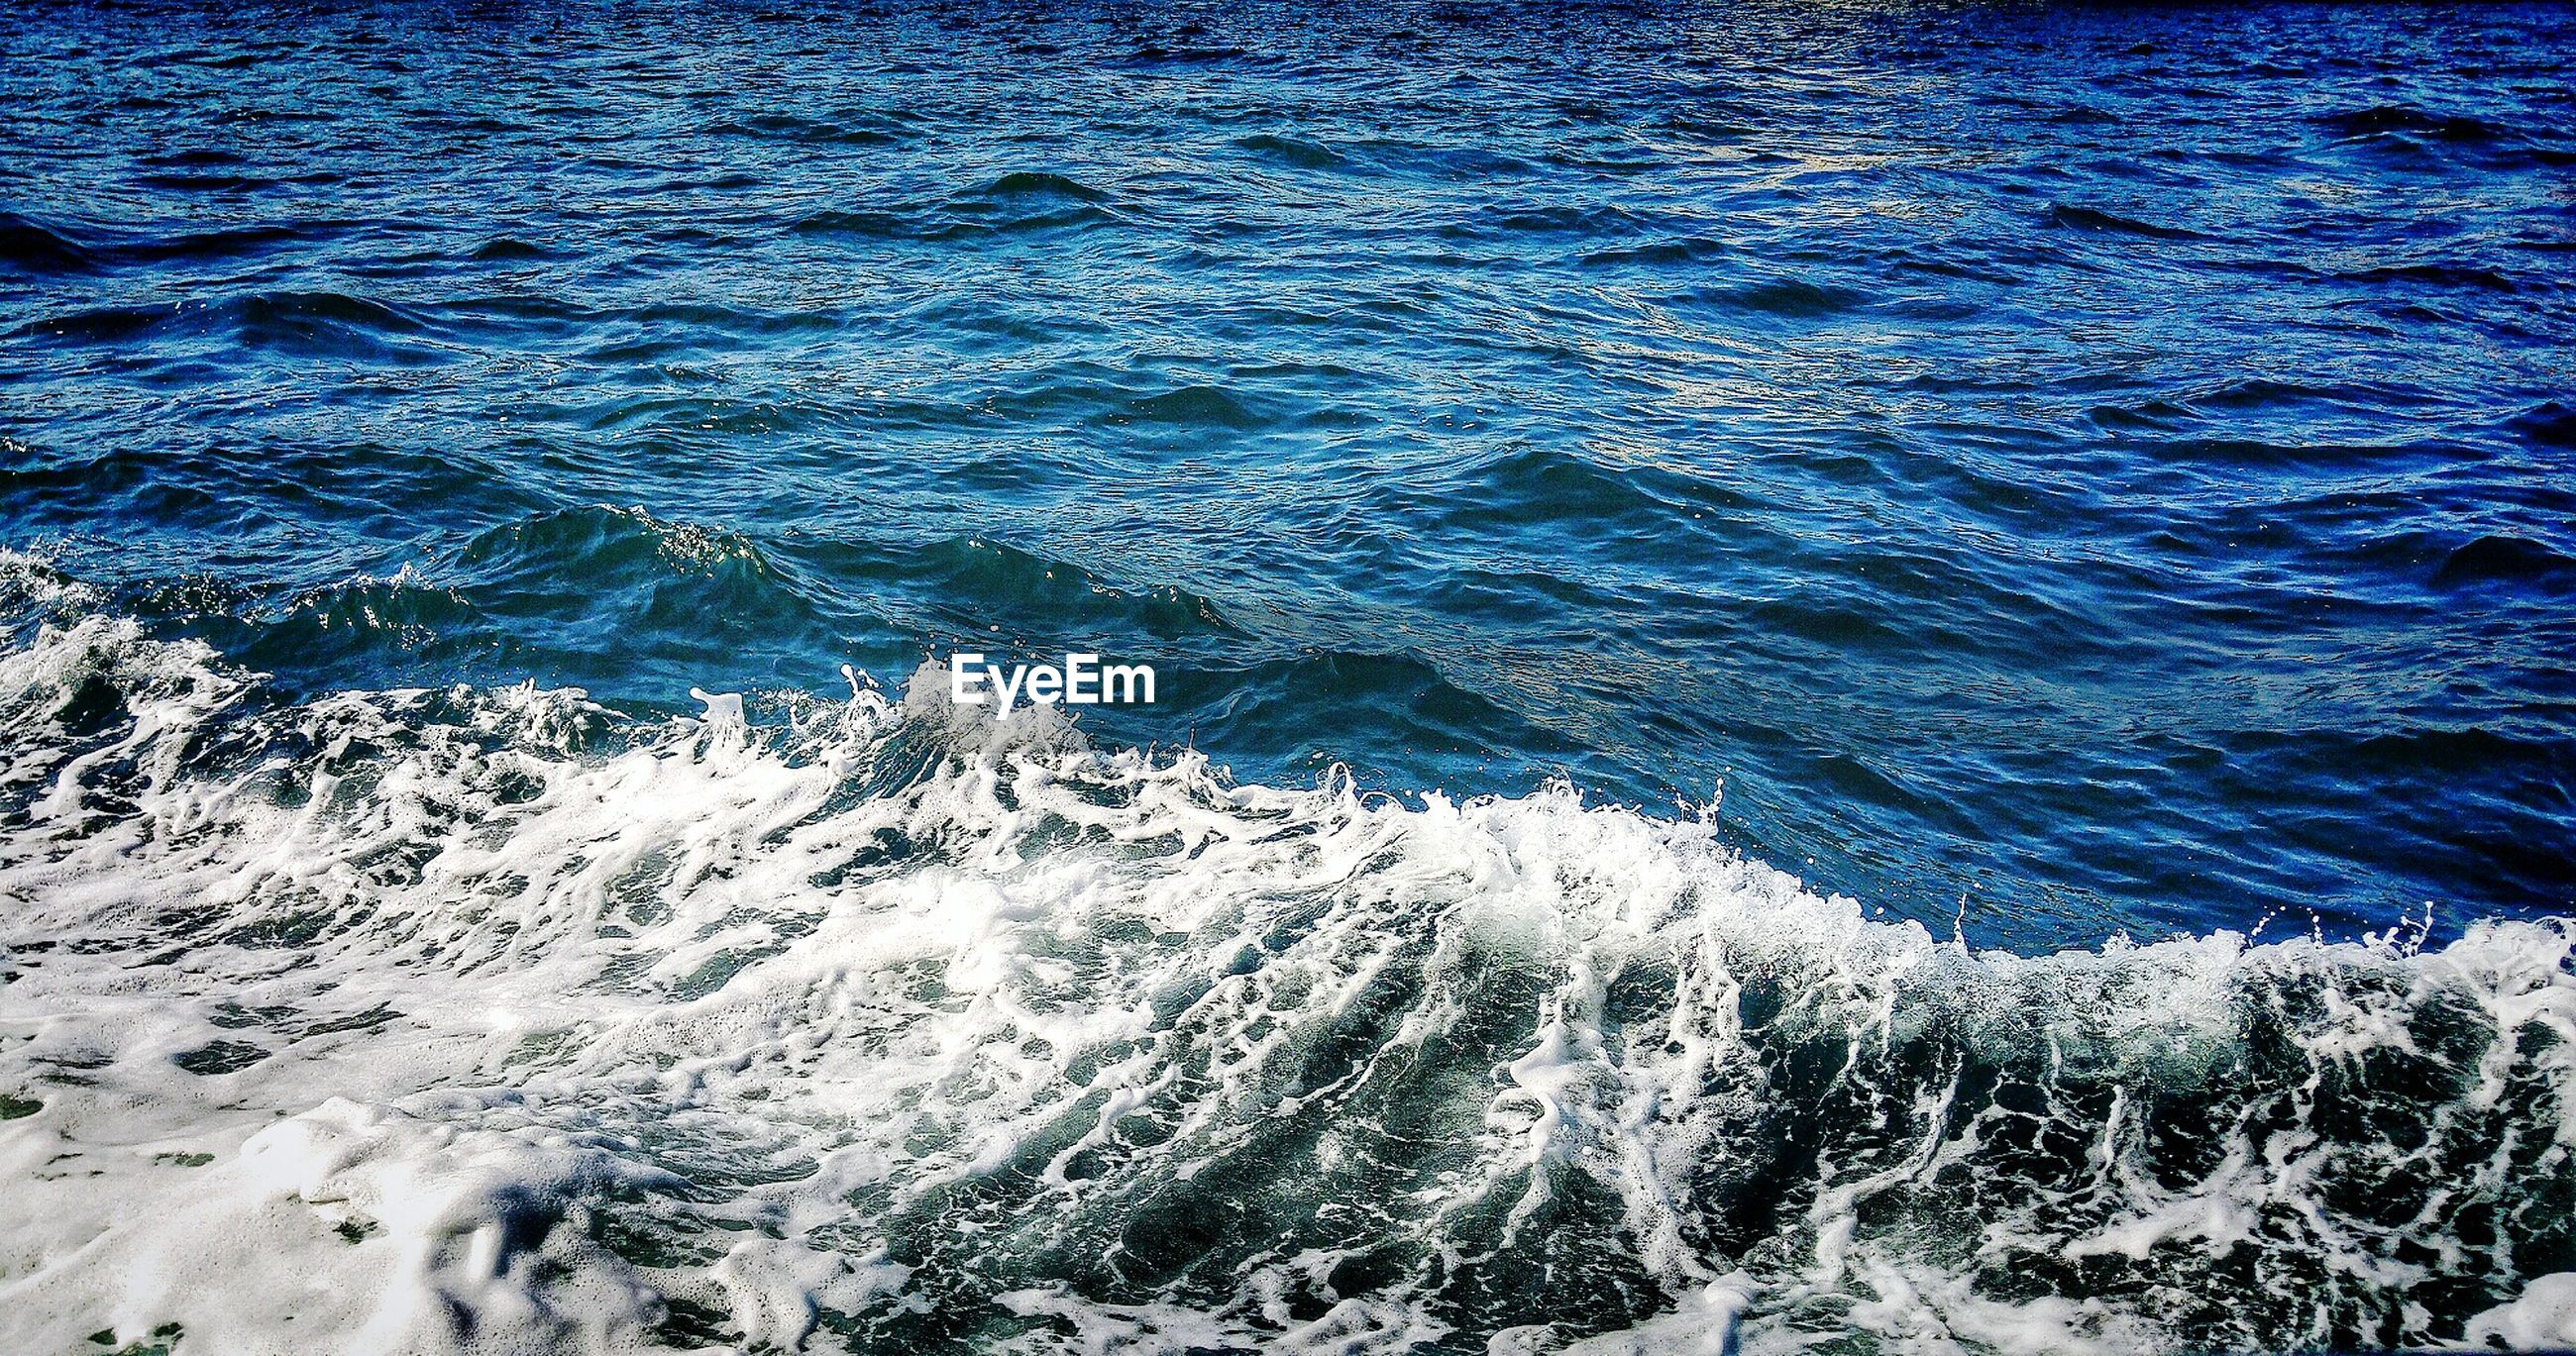 water, sea, surf, blue, rippled, scenics, nature, wave, beauty in nature, seascape, day, tranquil scene, outdoors, cliff, non-urban scene, tranquility, splashing, breaking, tourism, wake, tide, water surface, remote, vacations, majestic, waterfront, no people, power in nature